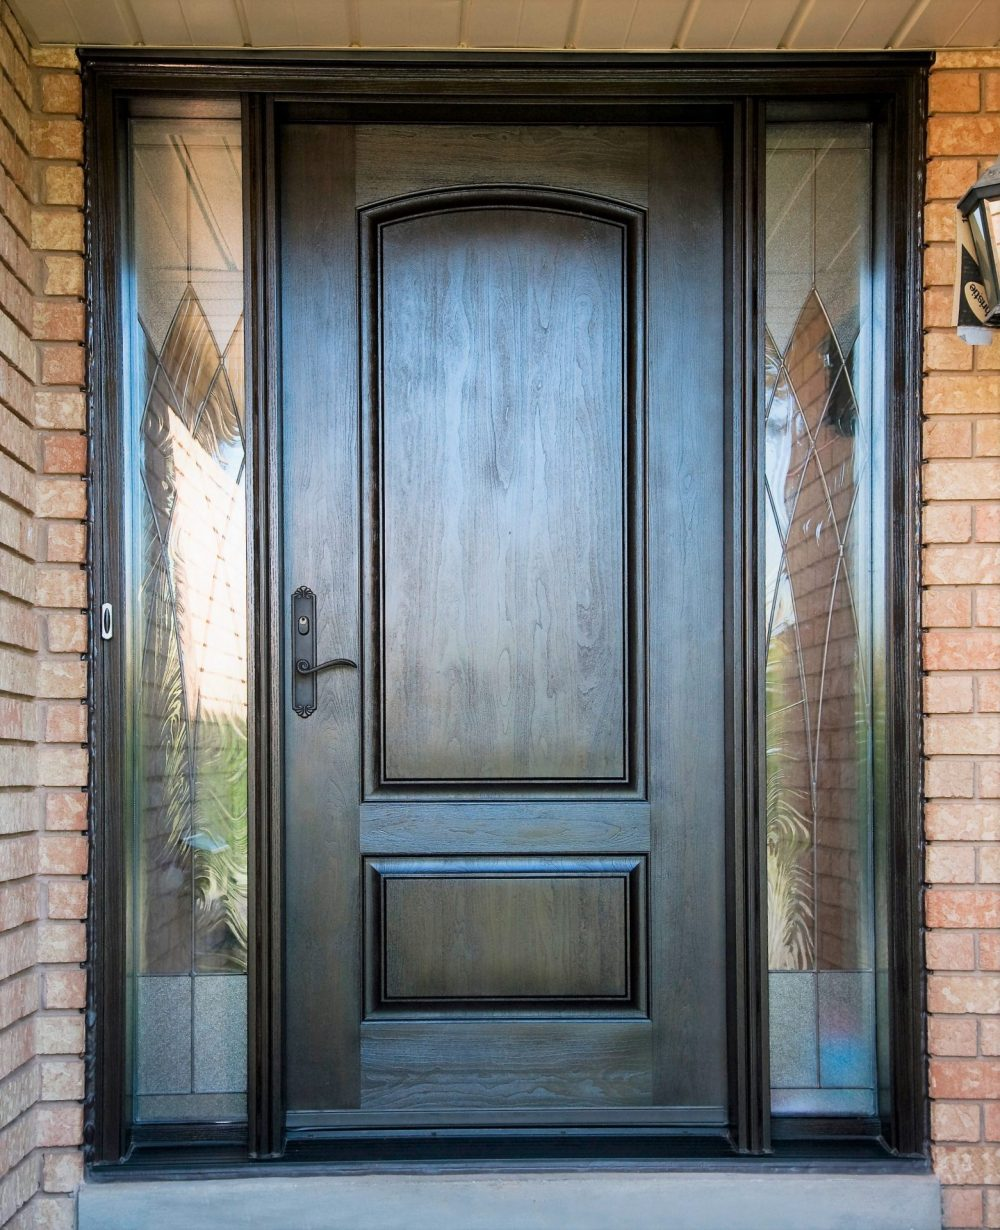 fiberglass door system solid door with dark walnut stain and gloria glass in sidelights